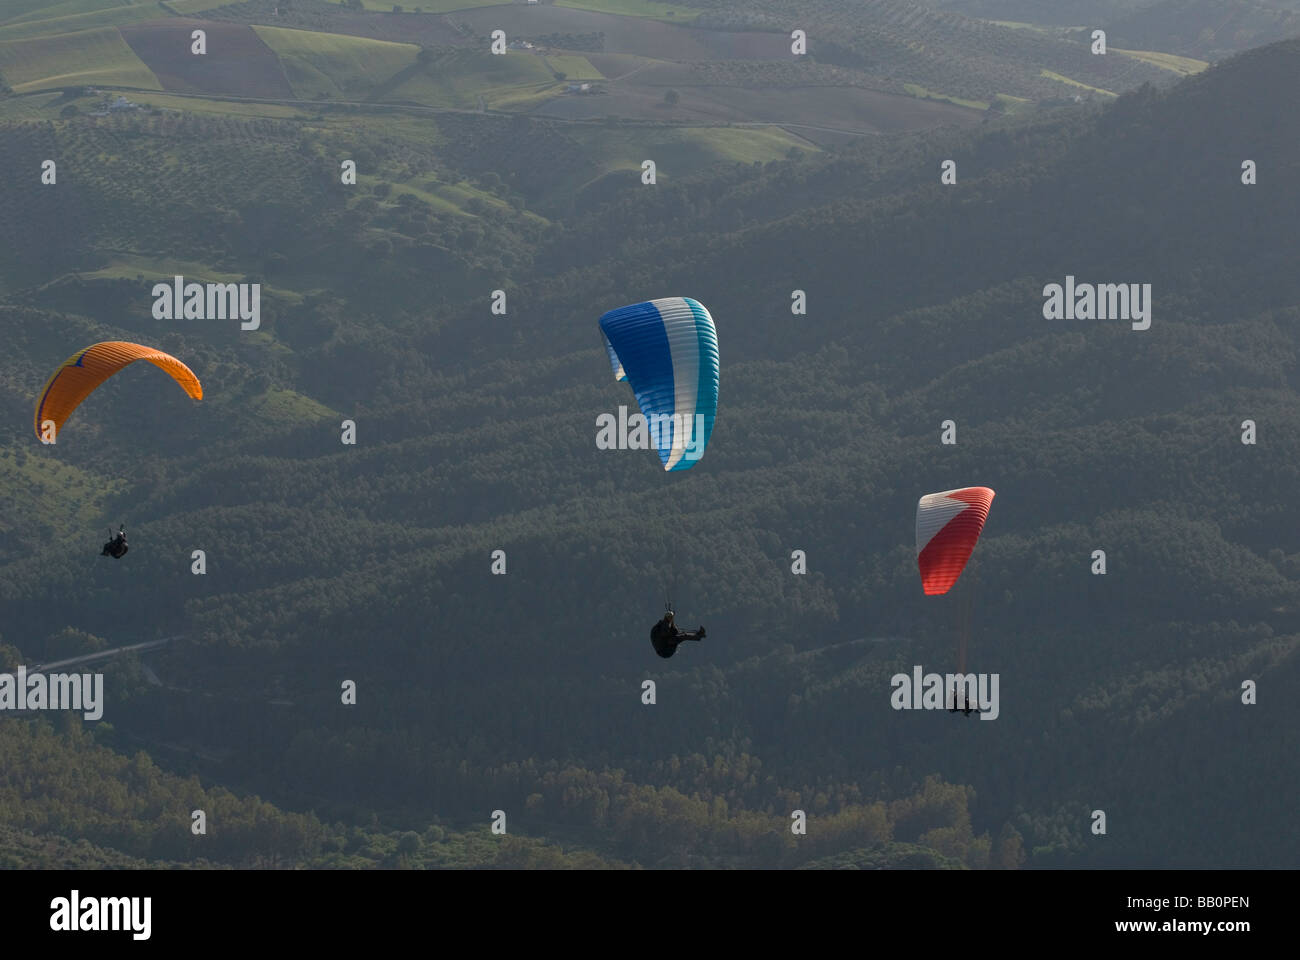 3 Paragliders in flight - Stock Image